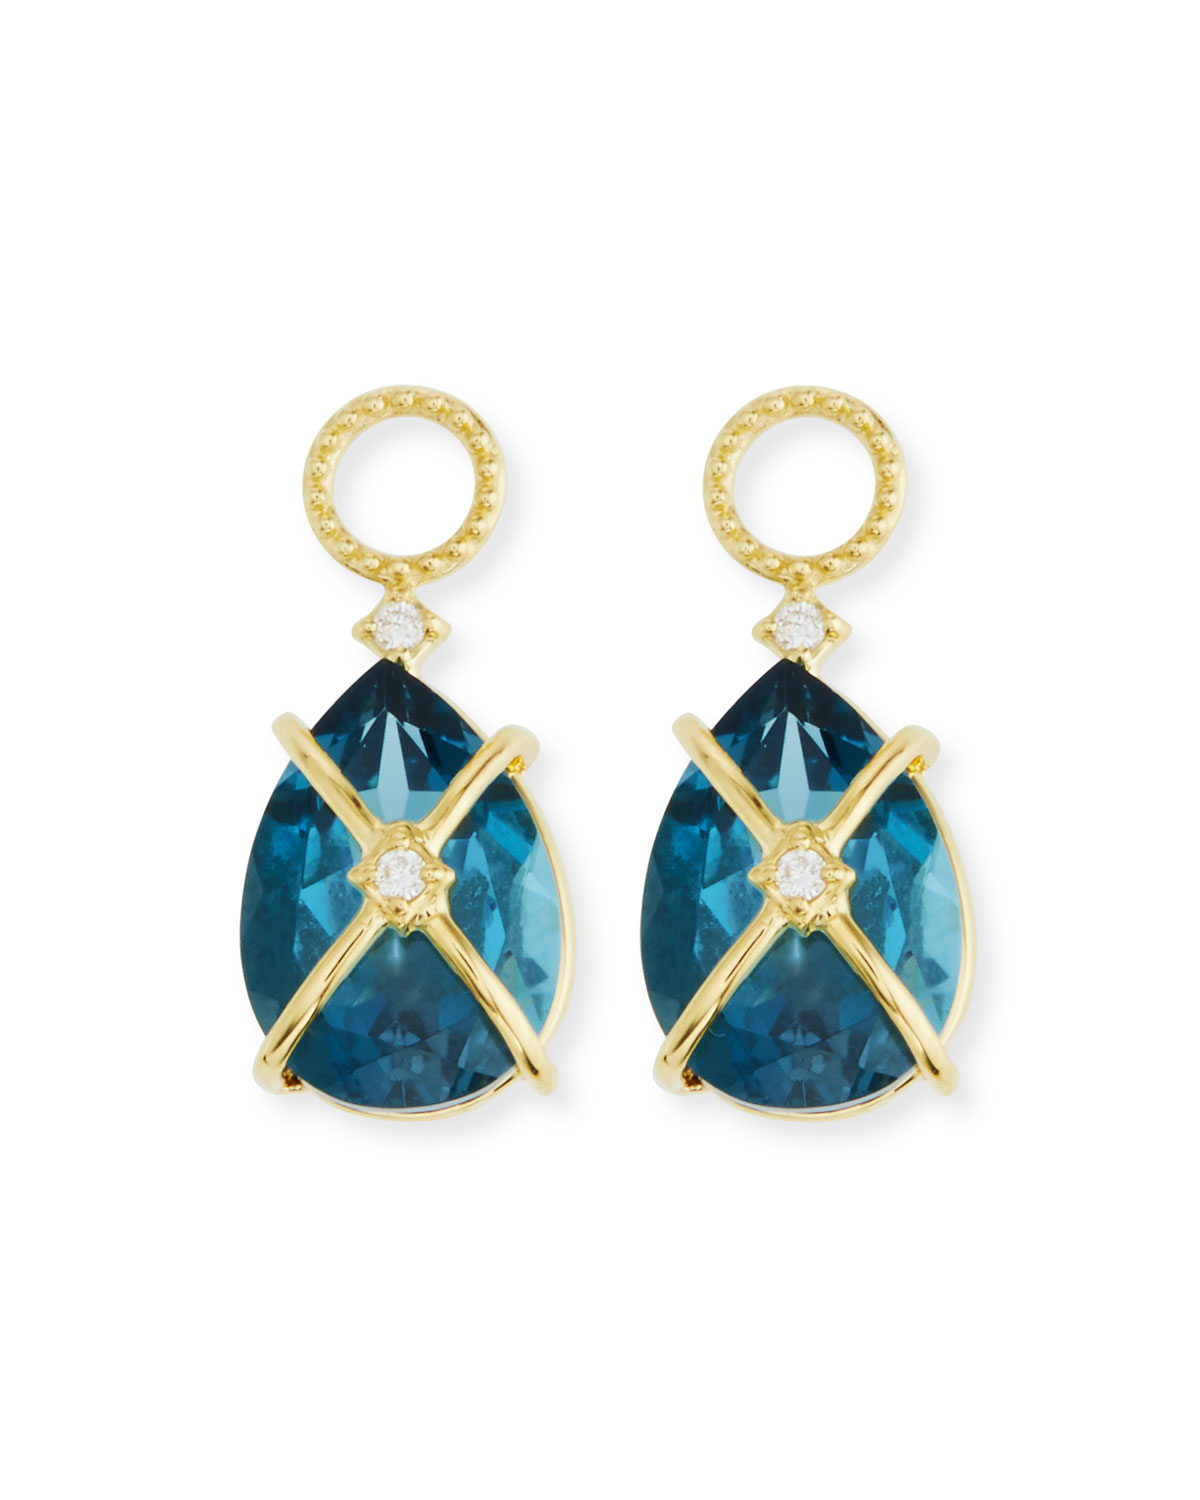 18k Lisse Tiny Criss Cross Pear Stone Earring Charms, Blue